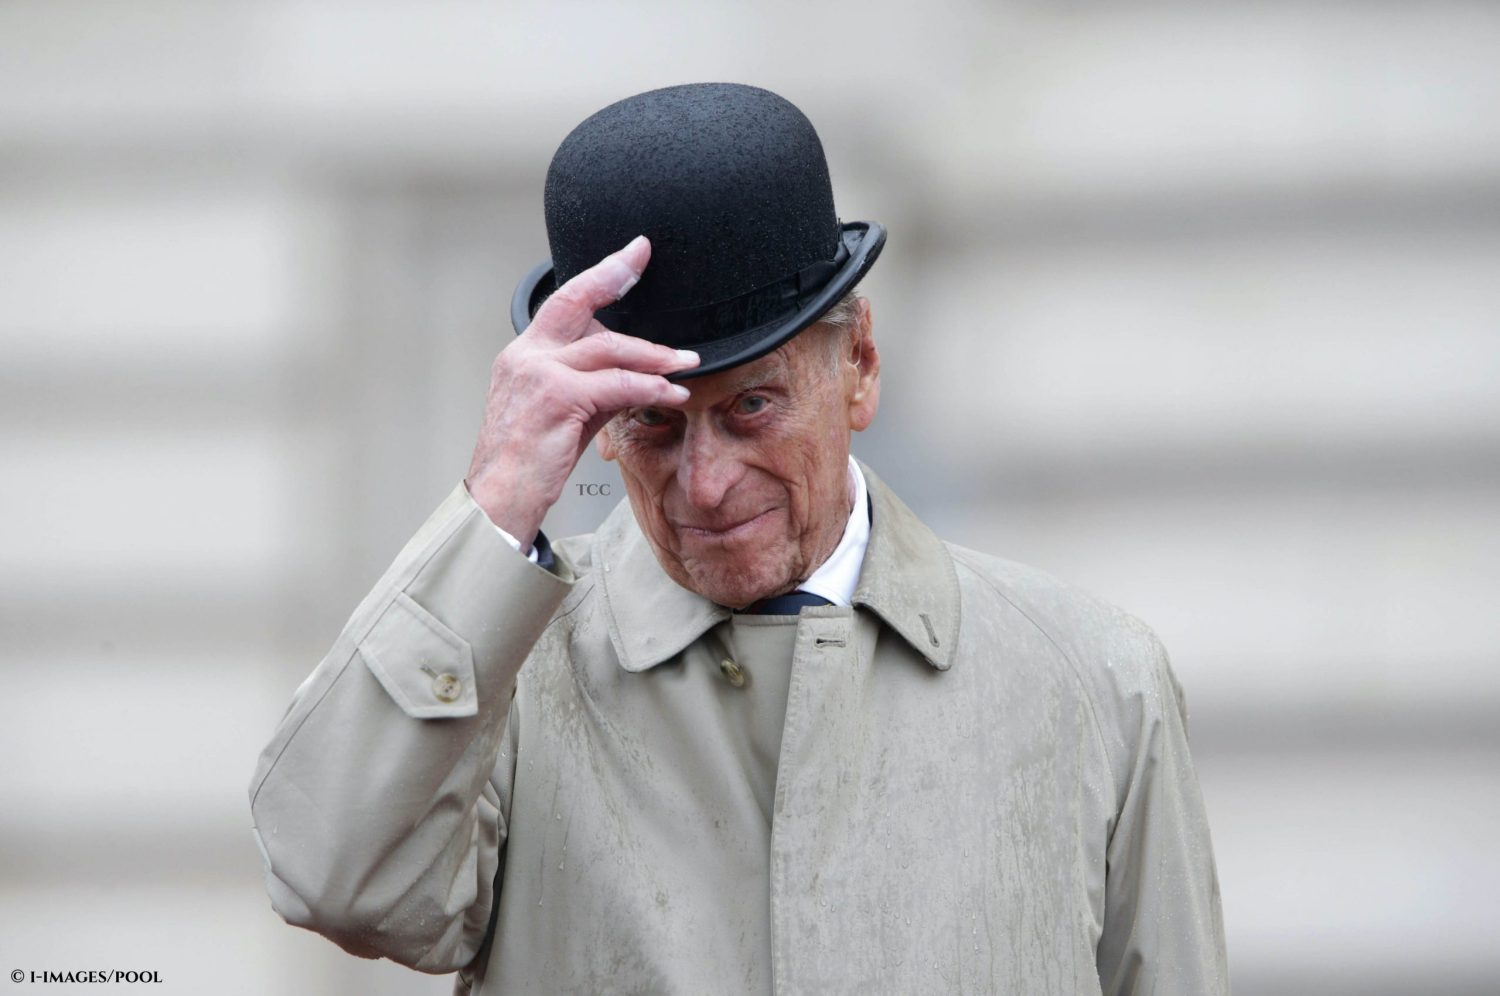 The Duke of Edinburgh attending the Captain General's Parade as his final individual public engagement, at Buckingham Palace in 2017.